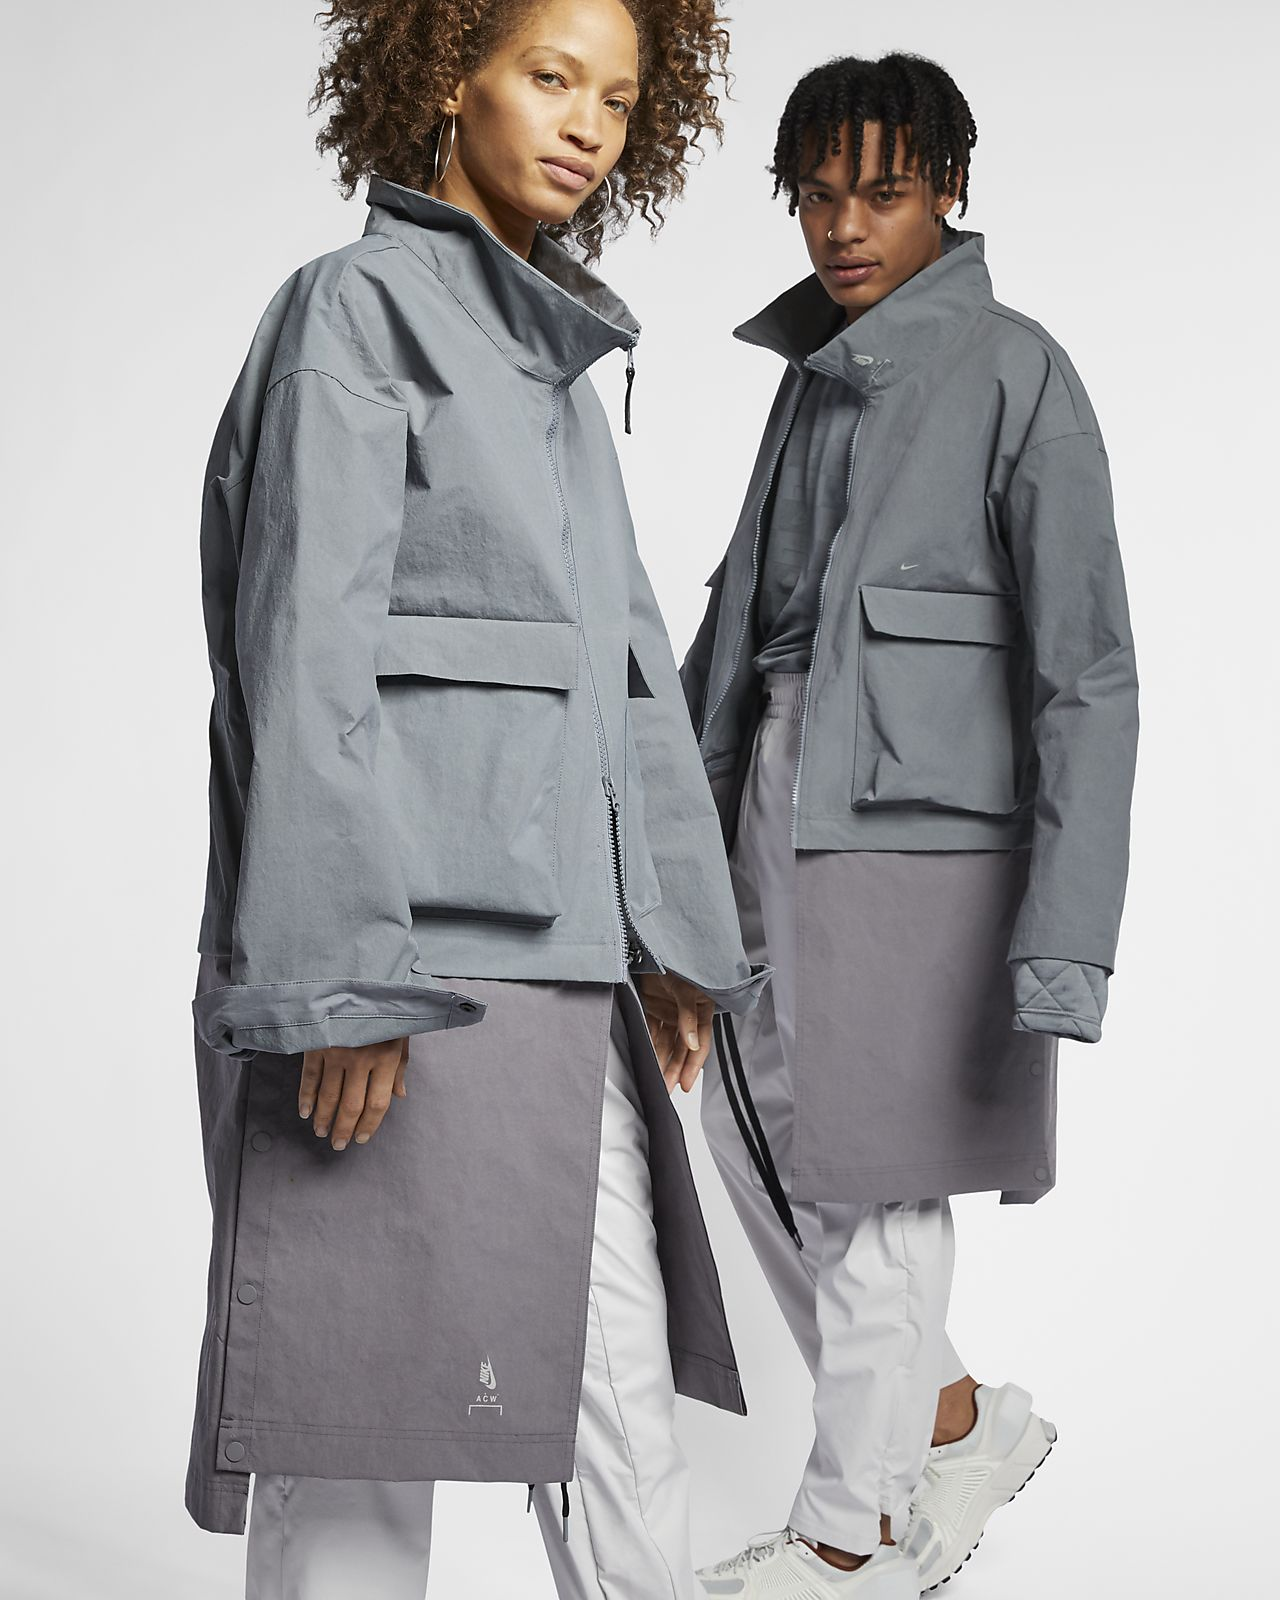 Nike x A-COLD-WALL* Men's Jacket